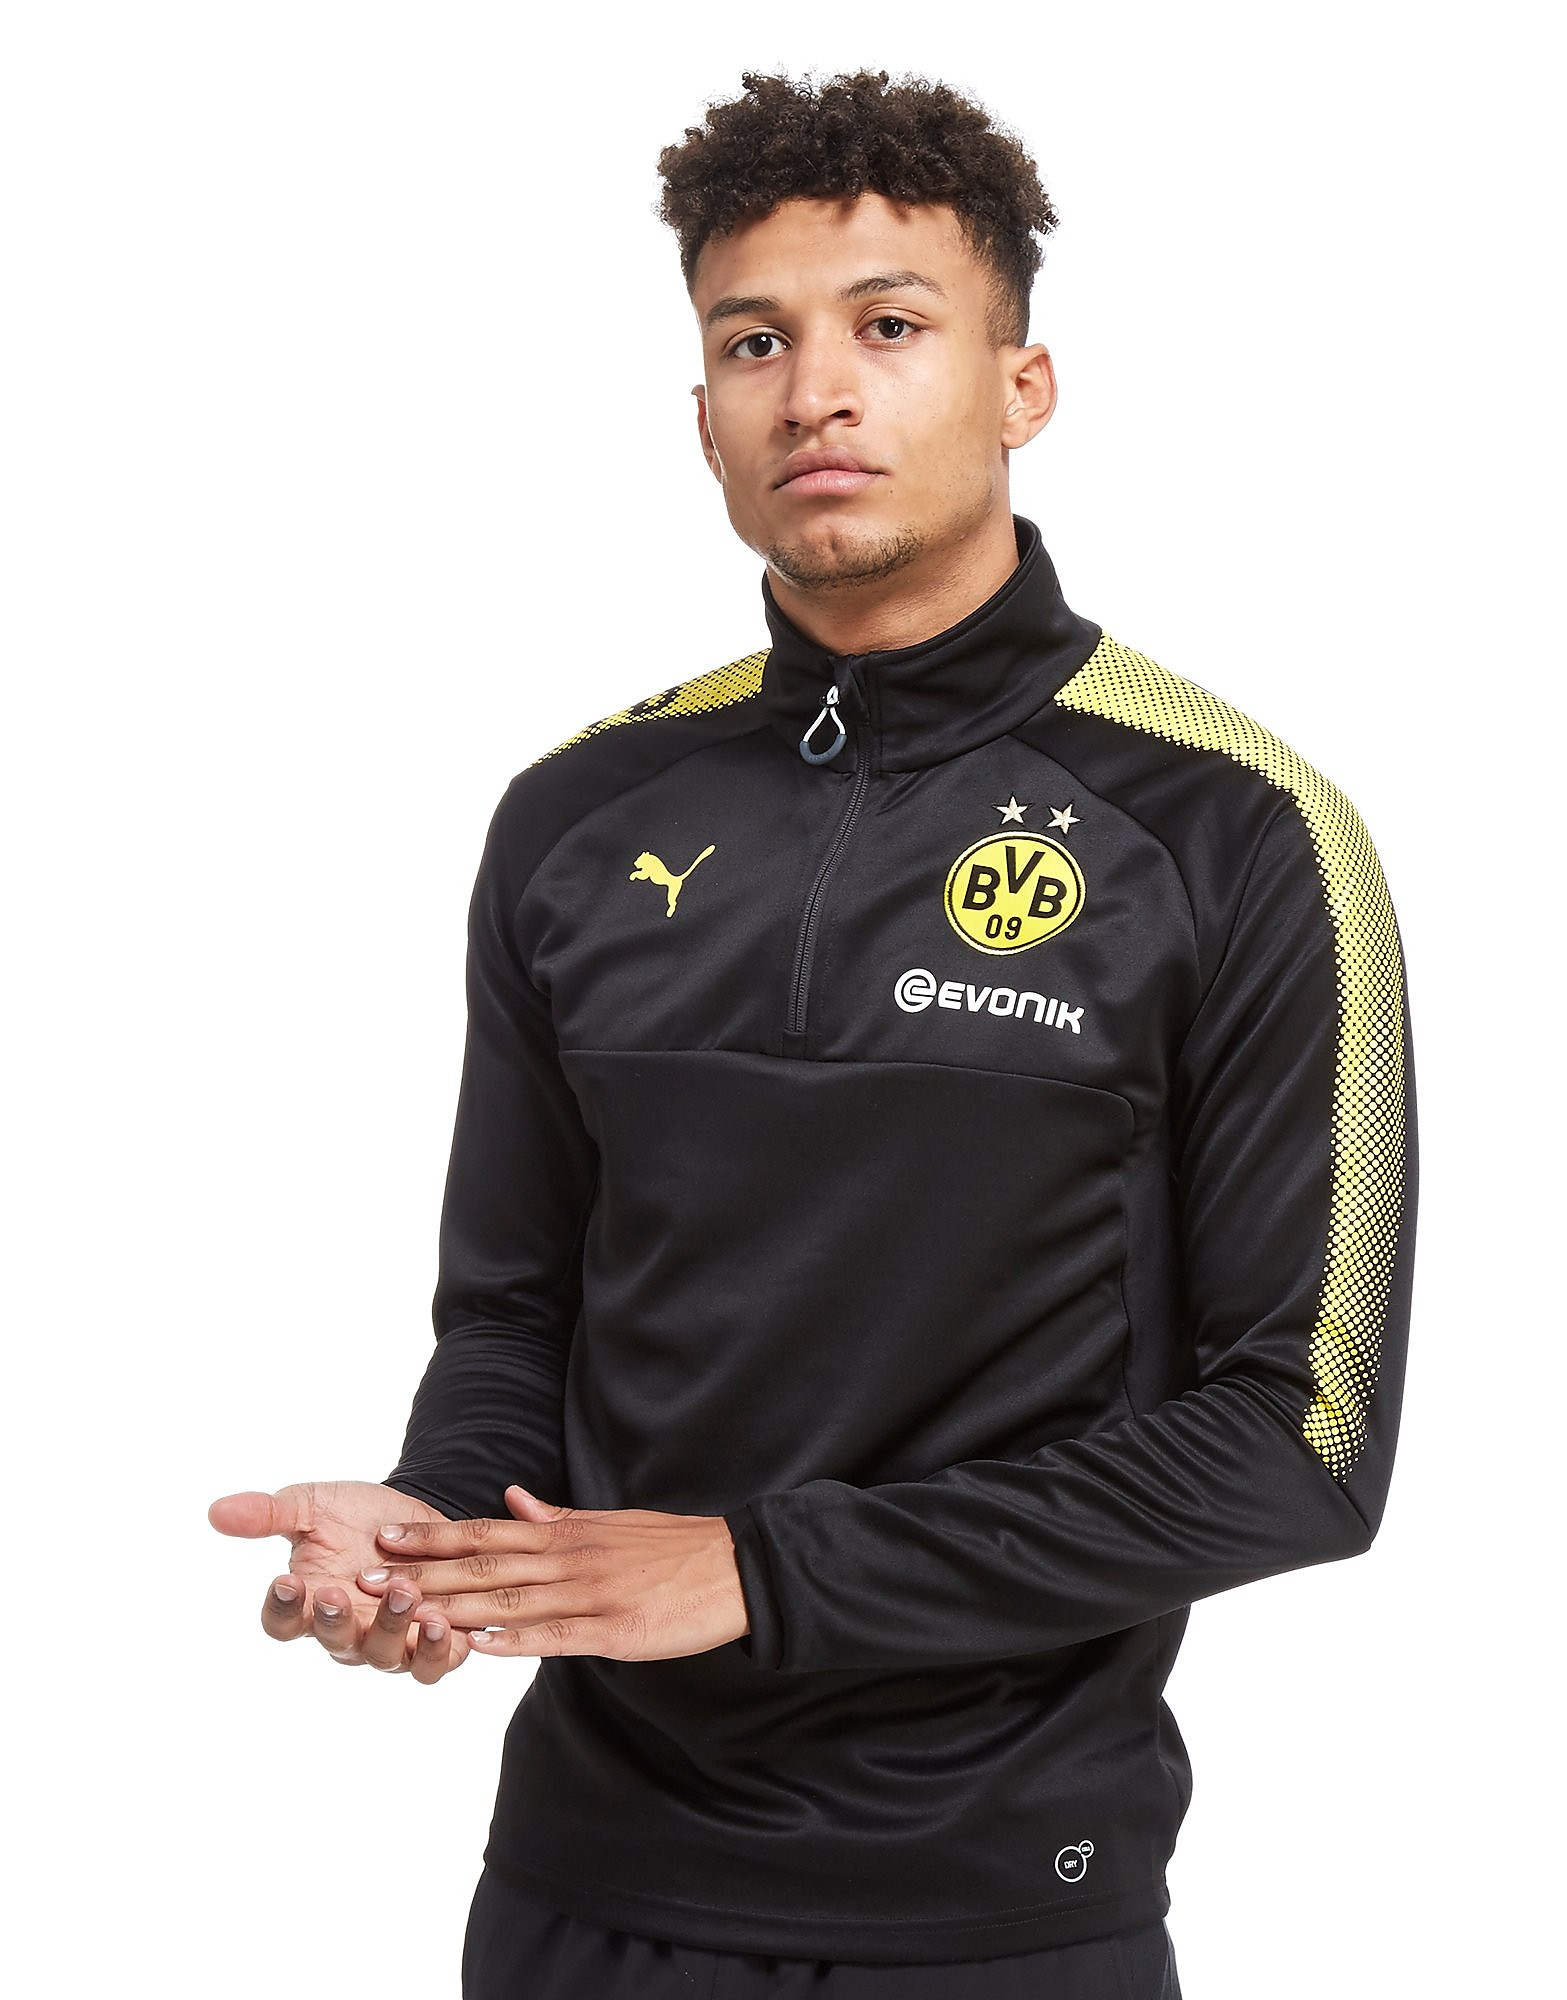 PUMA Borussia Dortmund 2017 1/4 Zip Training Top